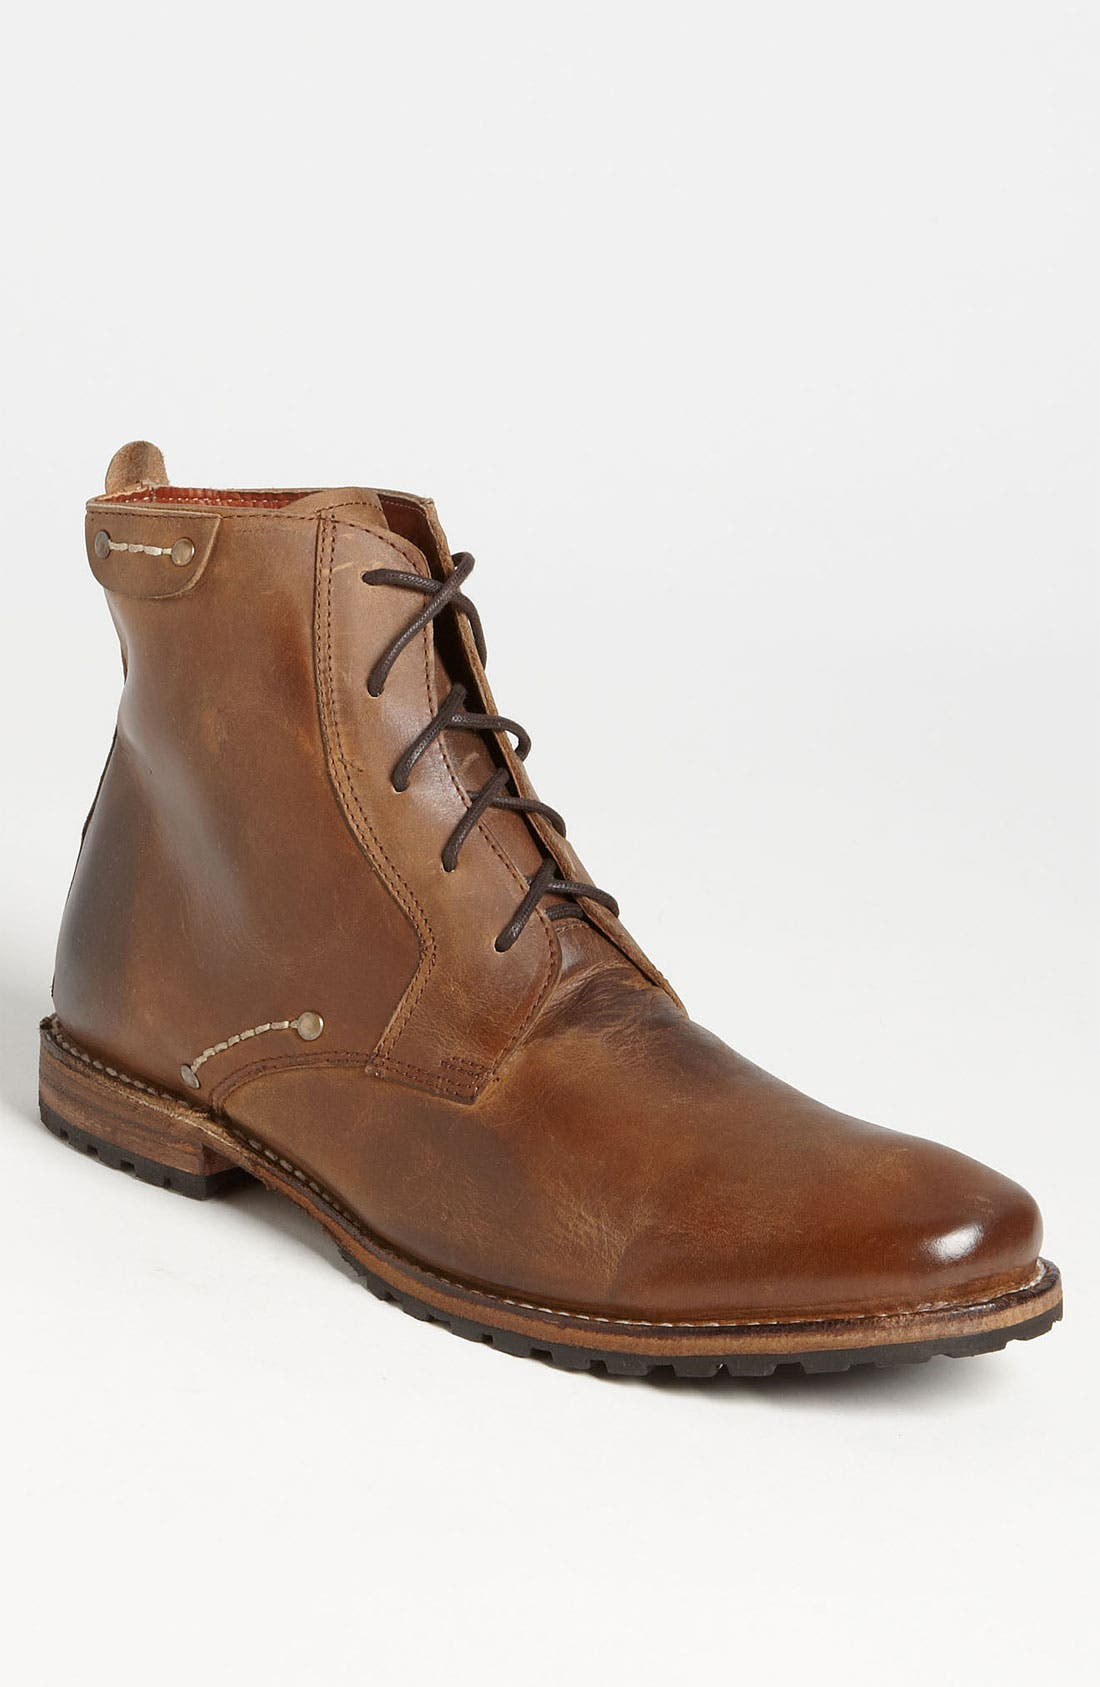 Alternate Image 1 Selected - Bed Stu 'Palazzo' Boot (Online Only)